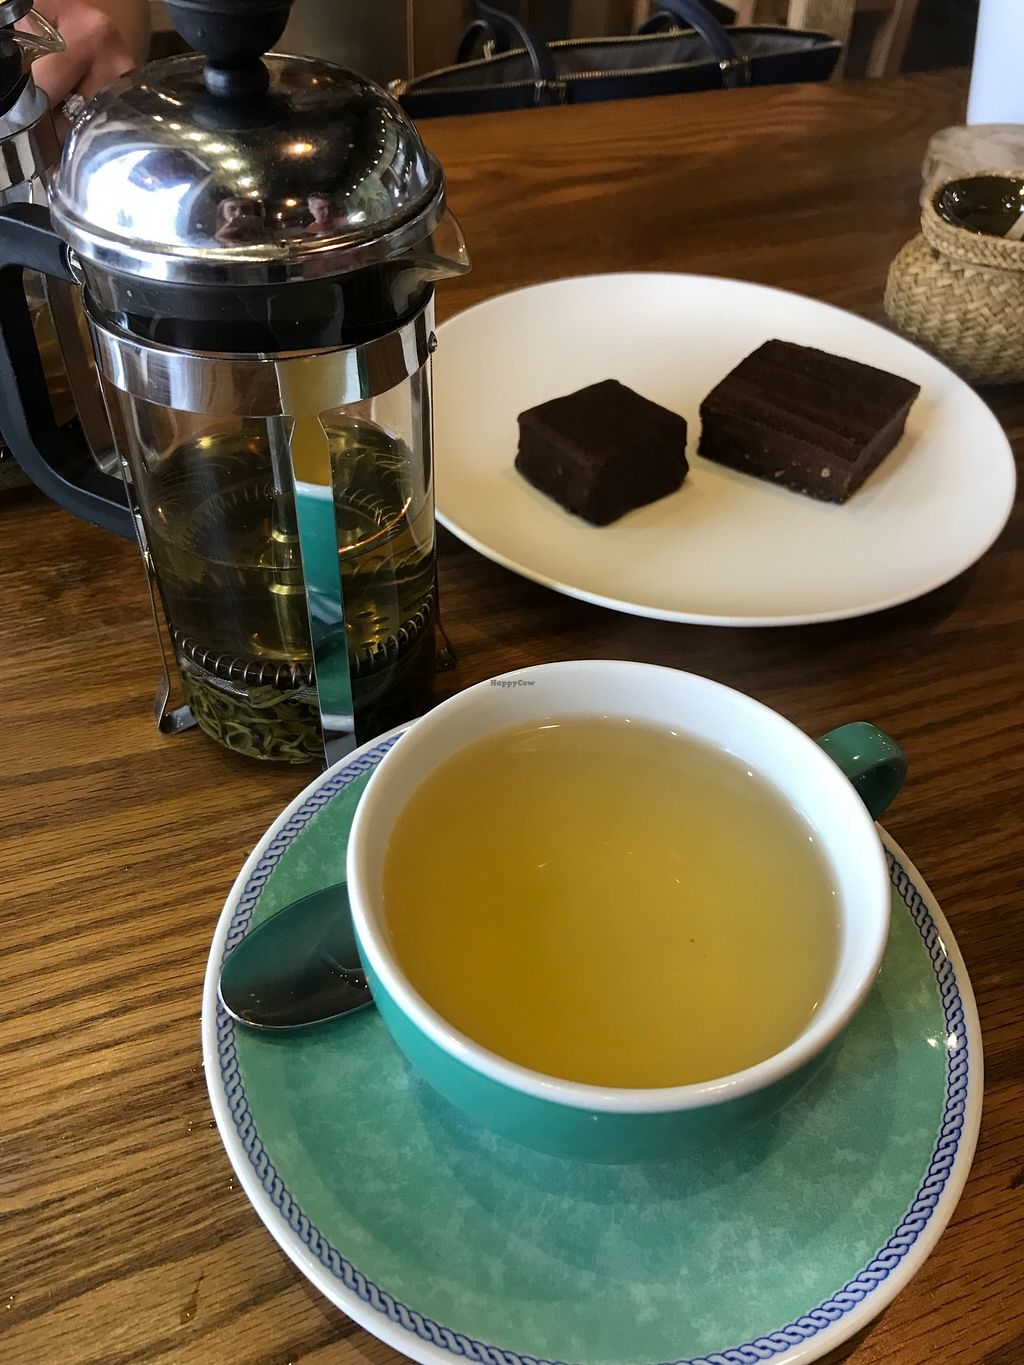 "Photo of Evergreen Organics  by <a href=""/members/profile/AshleighC"">AshleighC</a> <br/>The bounty bar and chocolate melt brownie <br/> February 23, 2018  - <a href='/contact/abuse/image/74739/362831'>Report</a>"